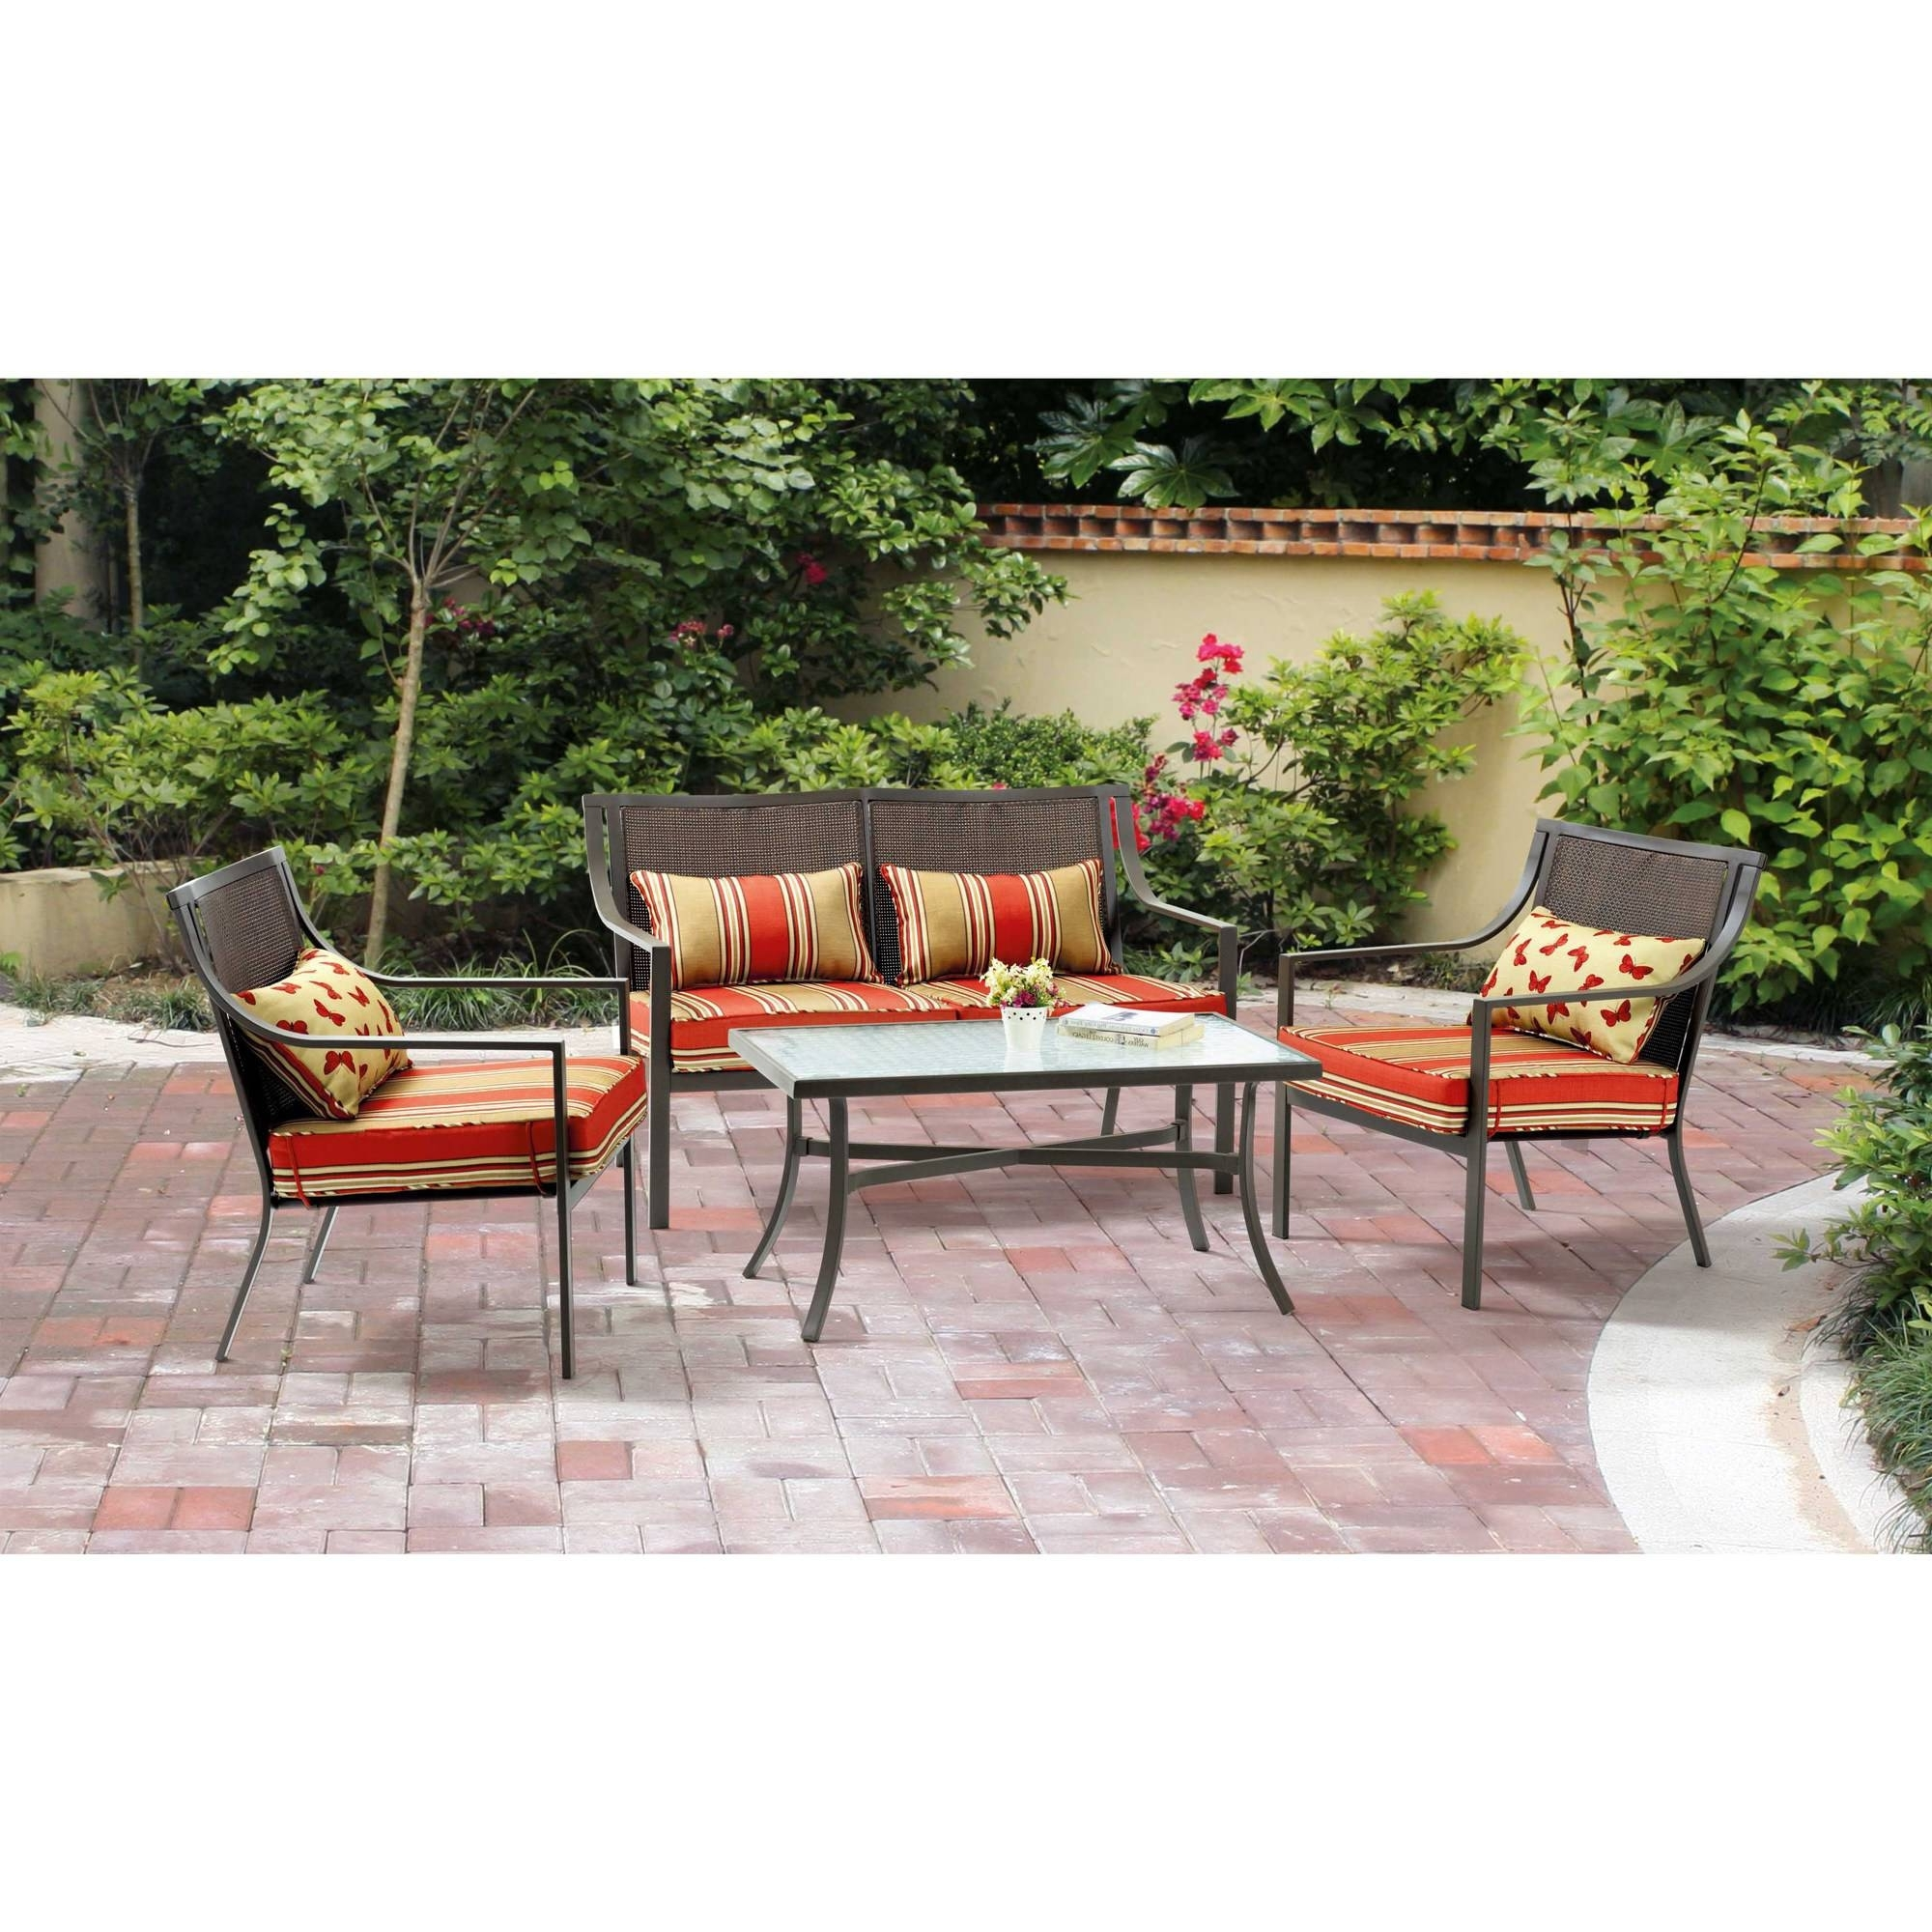 Mainstays Alexandra Square 4 Piece Patio Conversation Set, Seats 4 Regarding Favorite Iron Patio Conversation Sets (View 7 of 20)